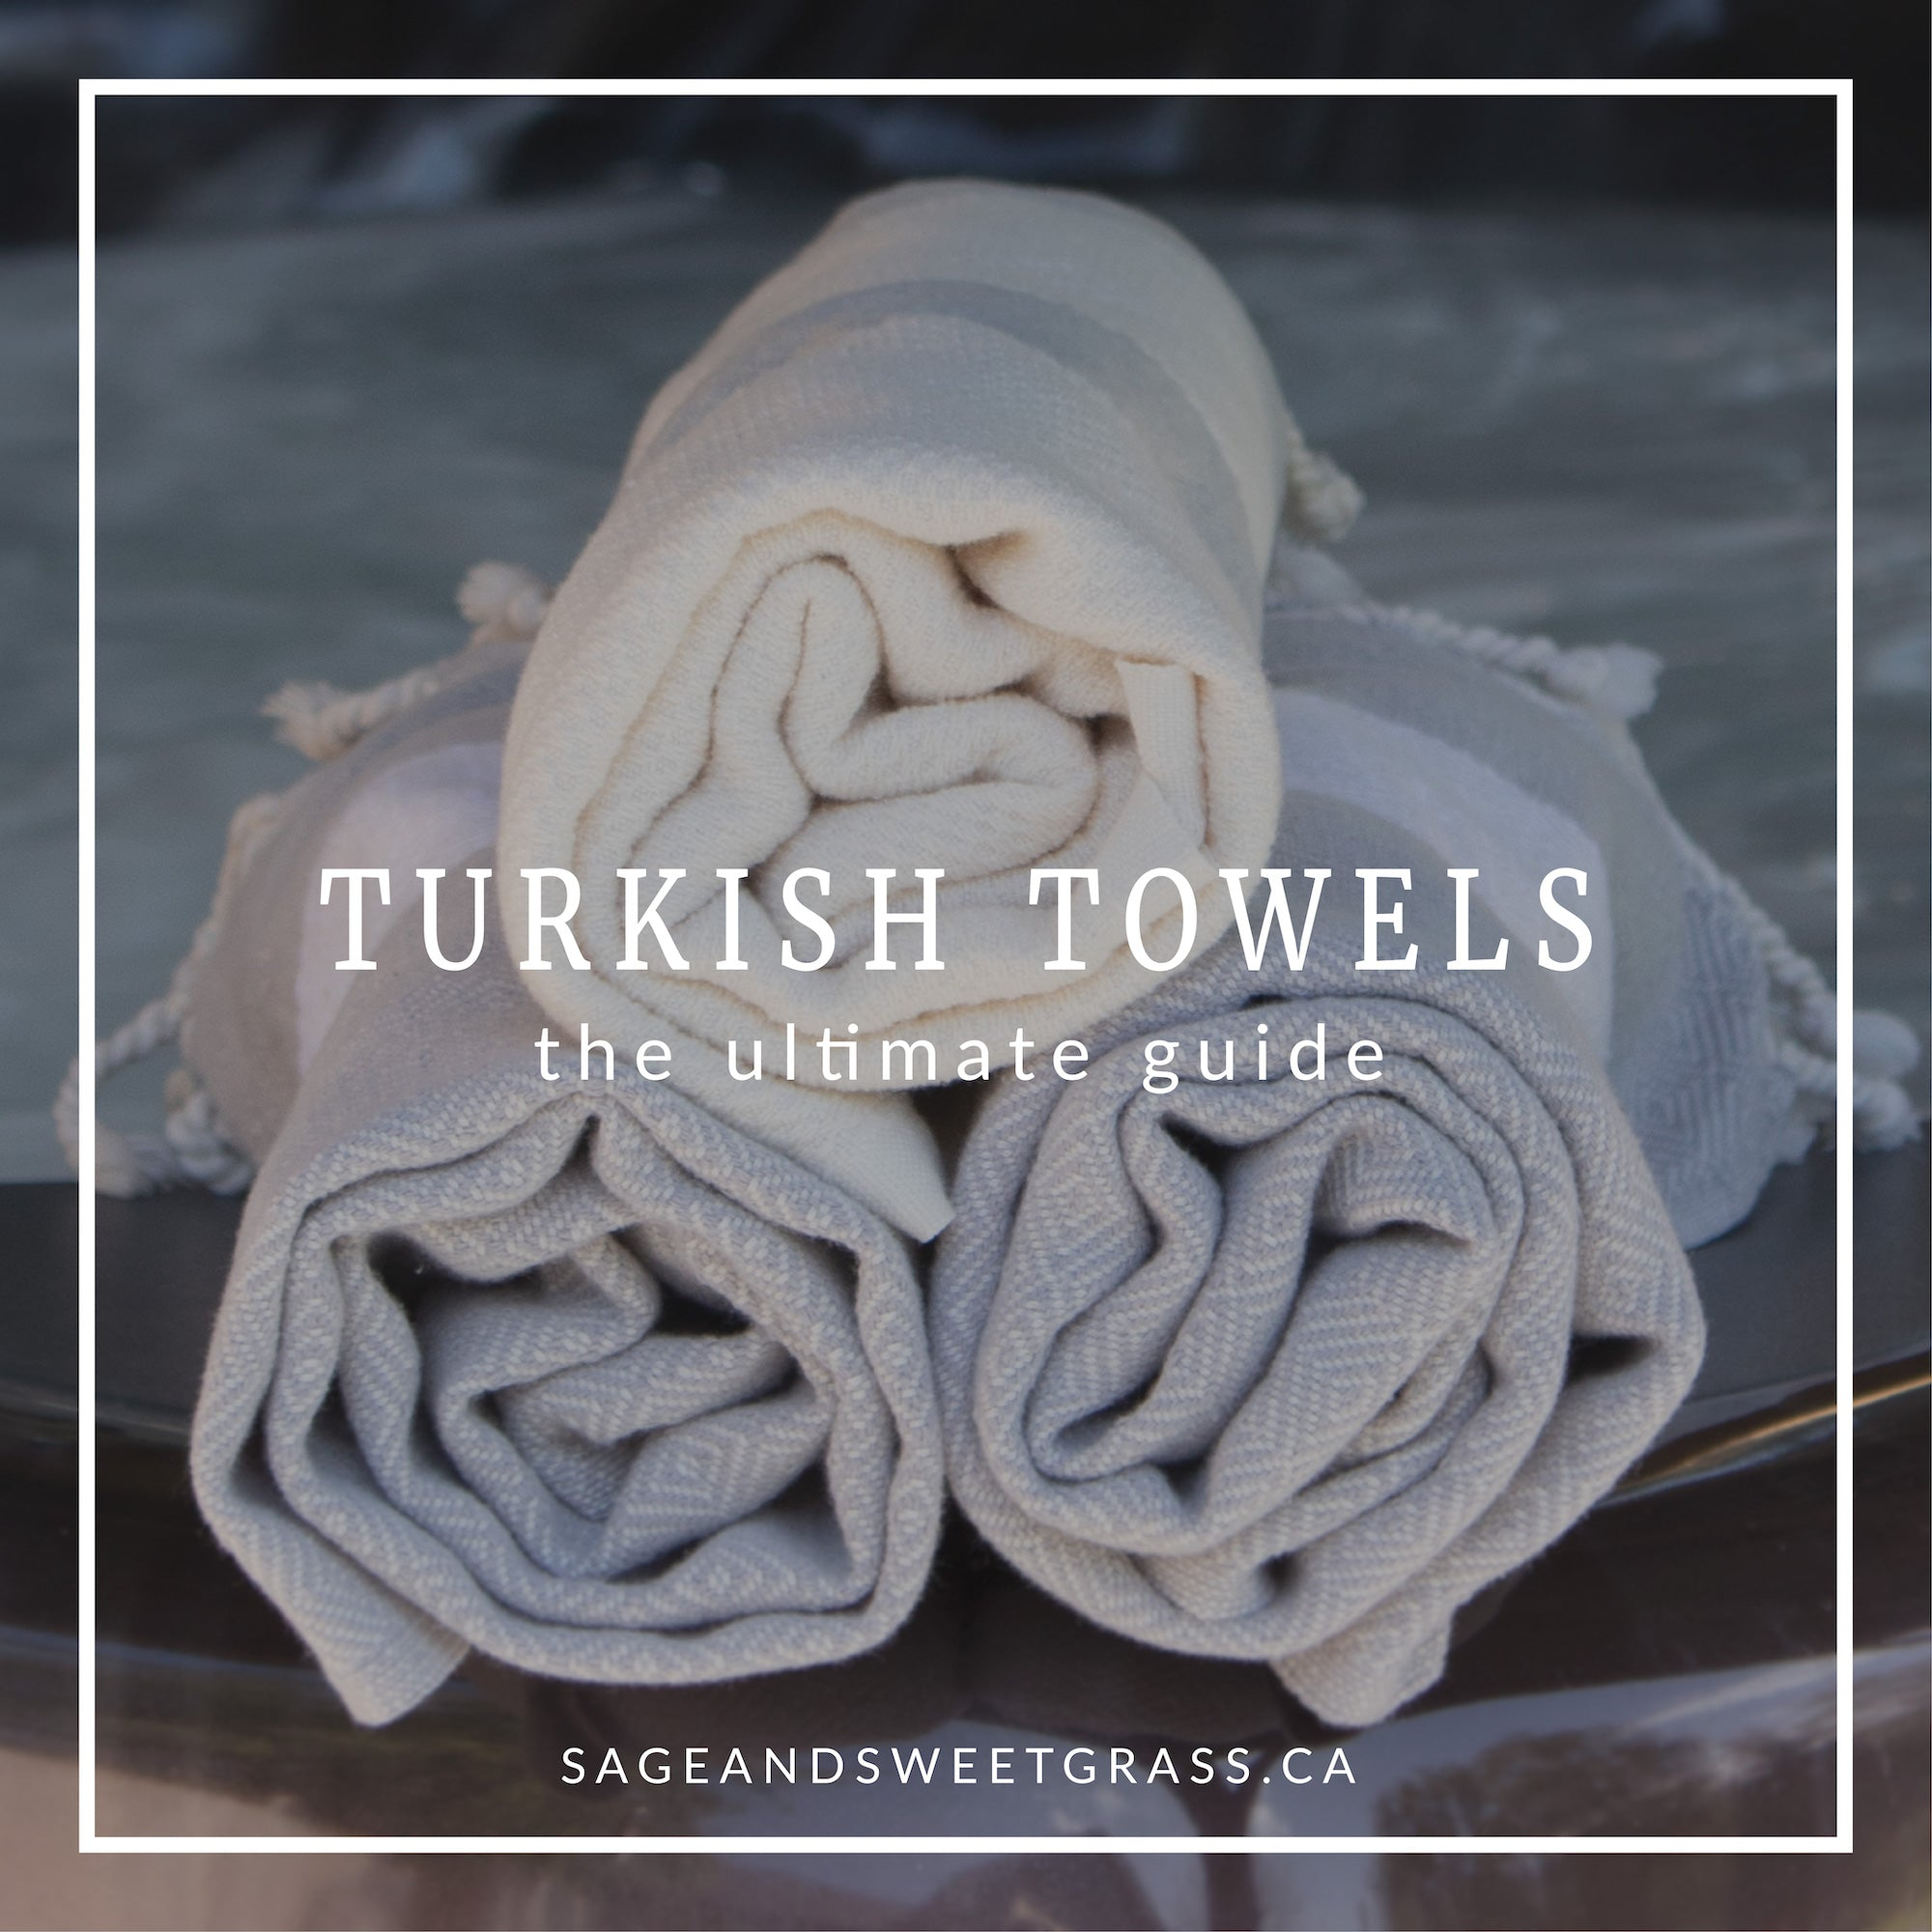 The Ultimate Guide to our Turkish Towels